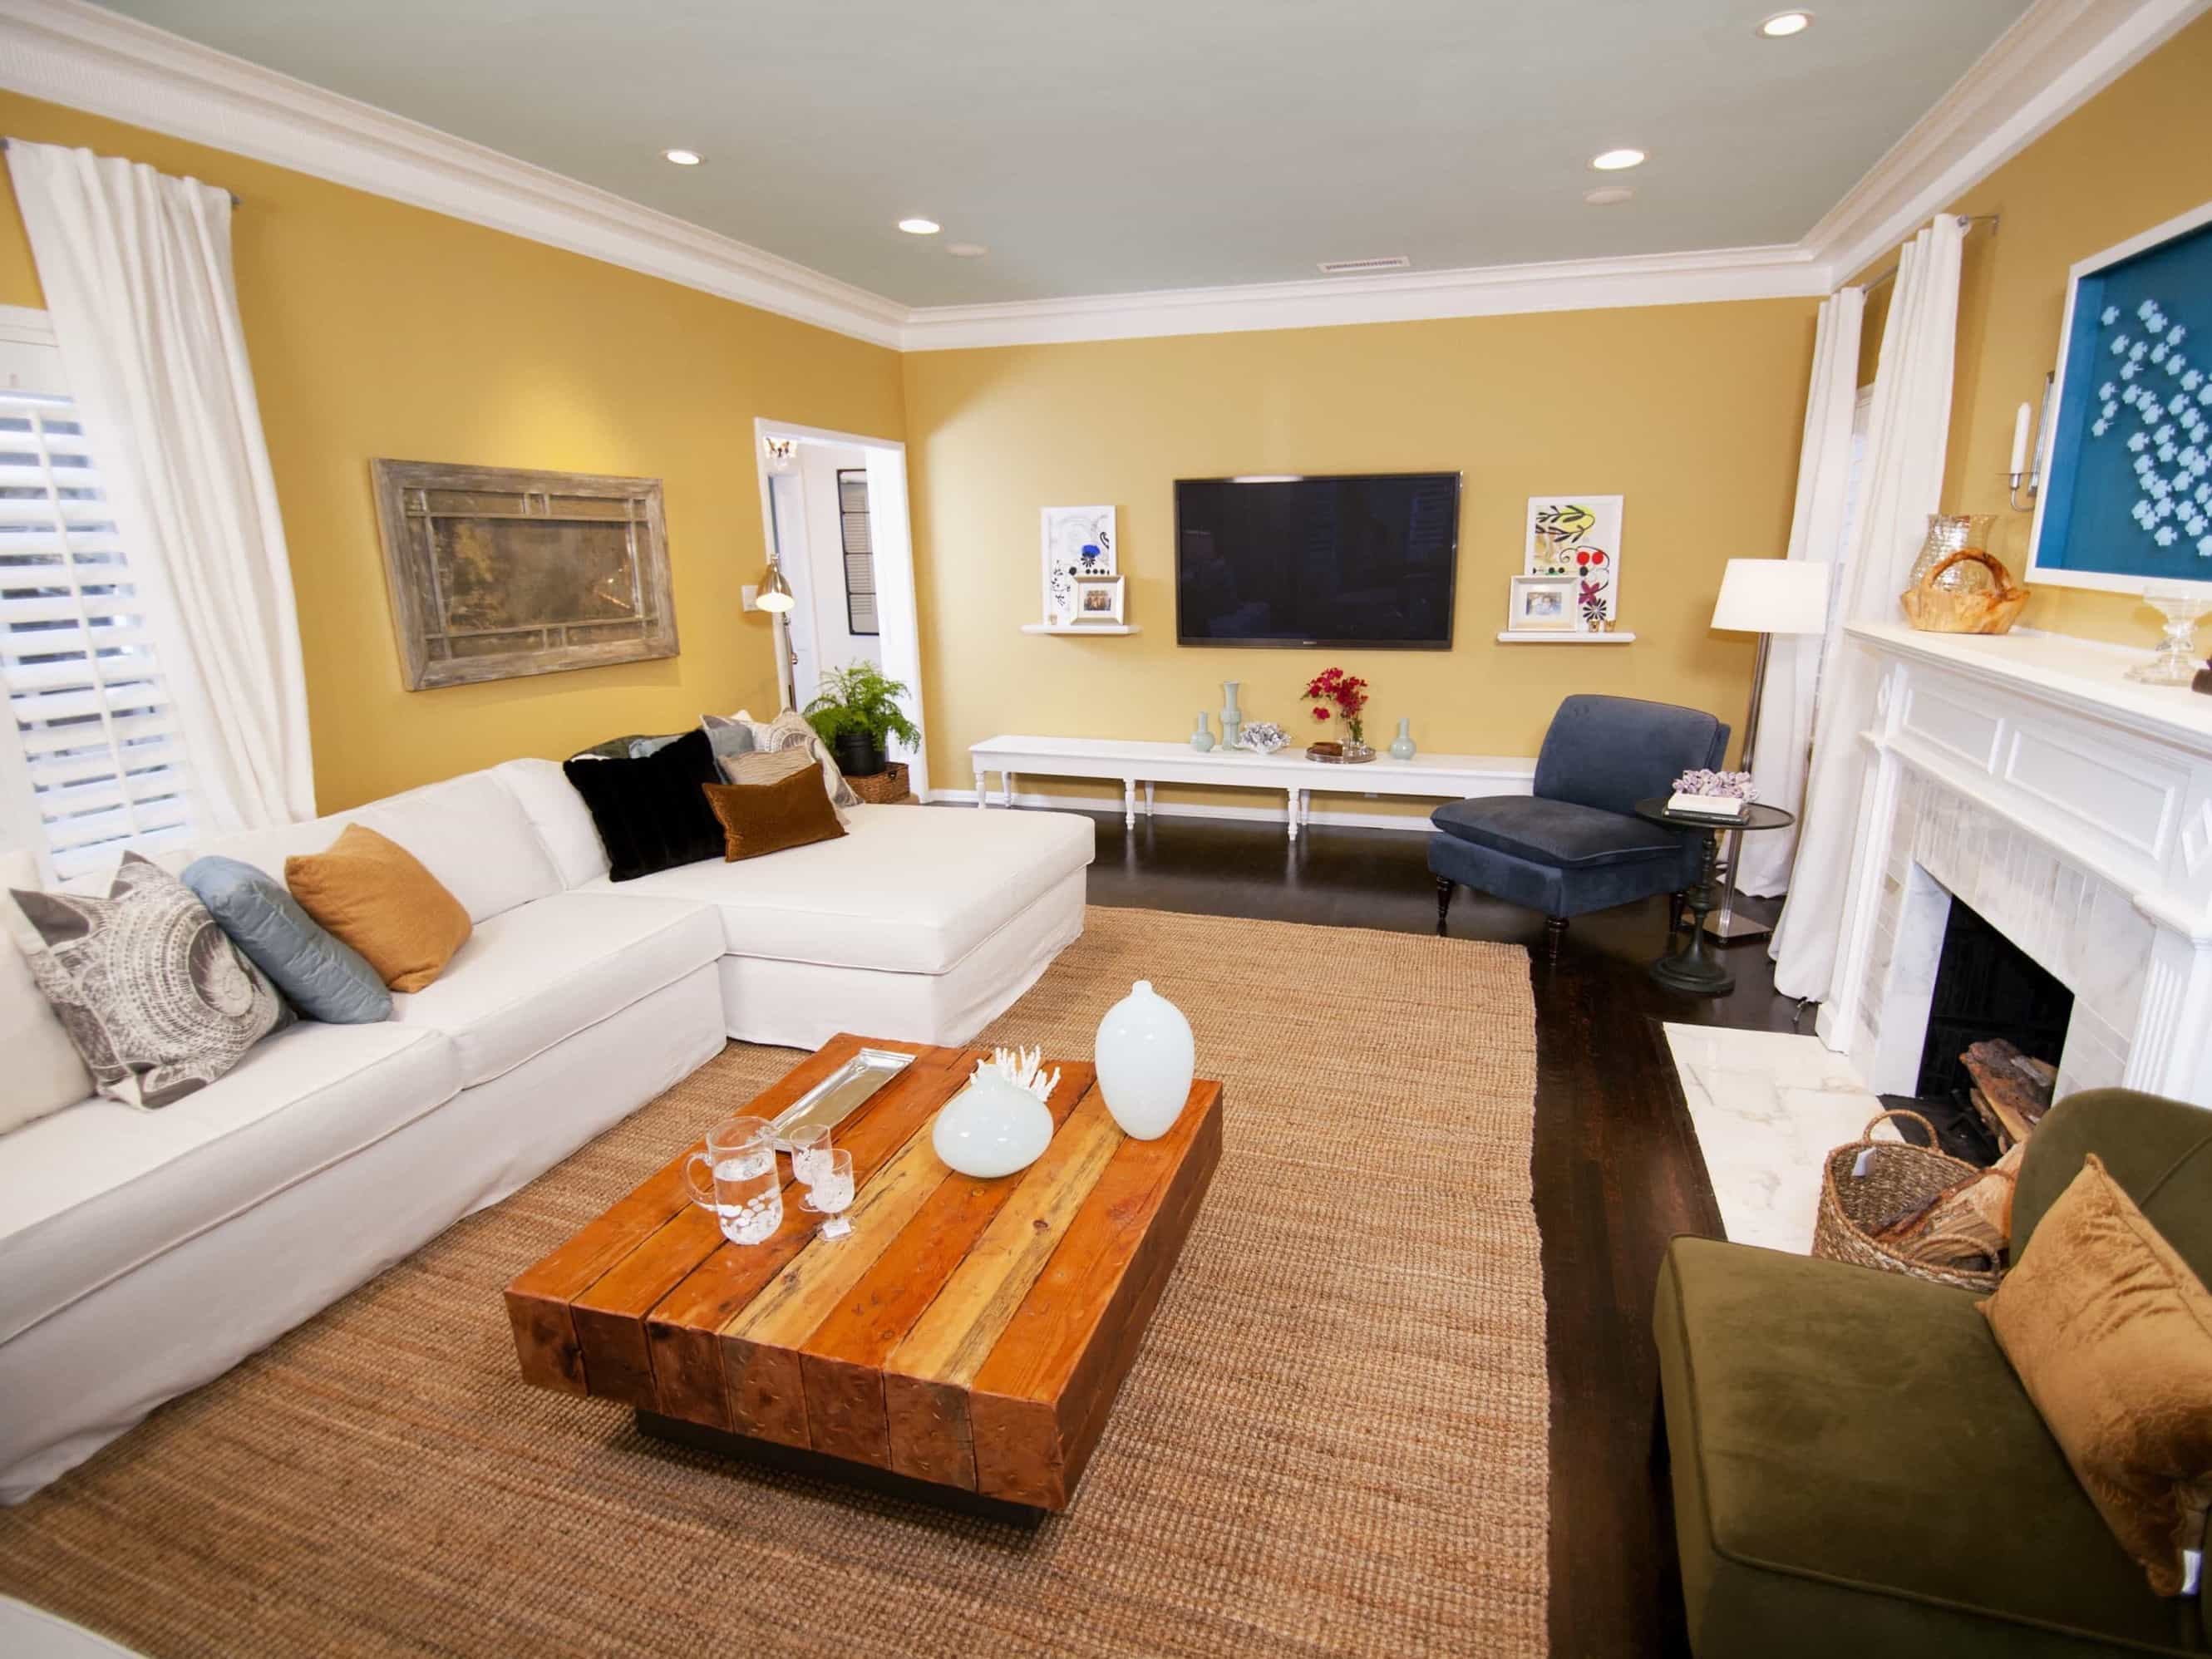 Featured Image of Yellow Living Room With Beach Inspired Accents